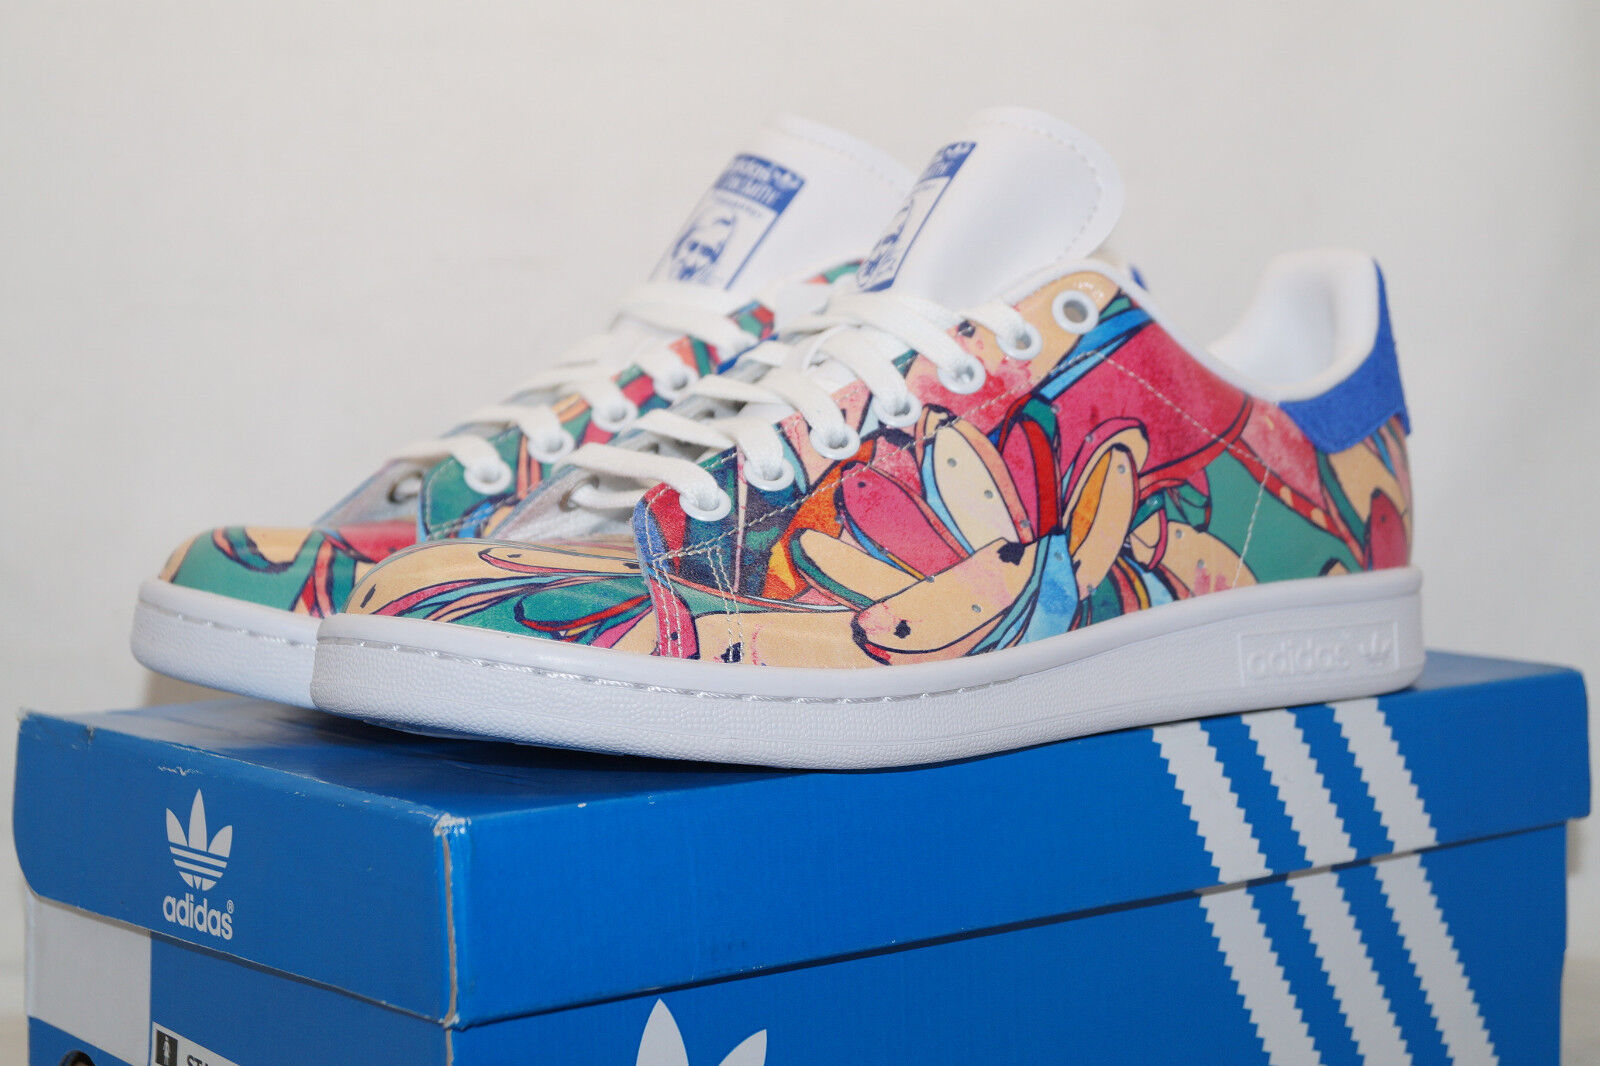 Adidas Adidas Adidas Originals Stan Smith UE 38 UK 5 tropical Print wmns s32036 Gomaespuma  soporte minorista mayorista